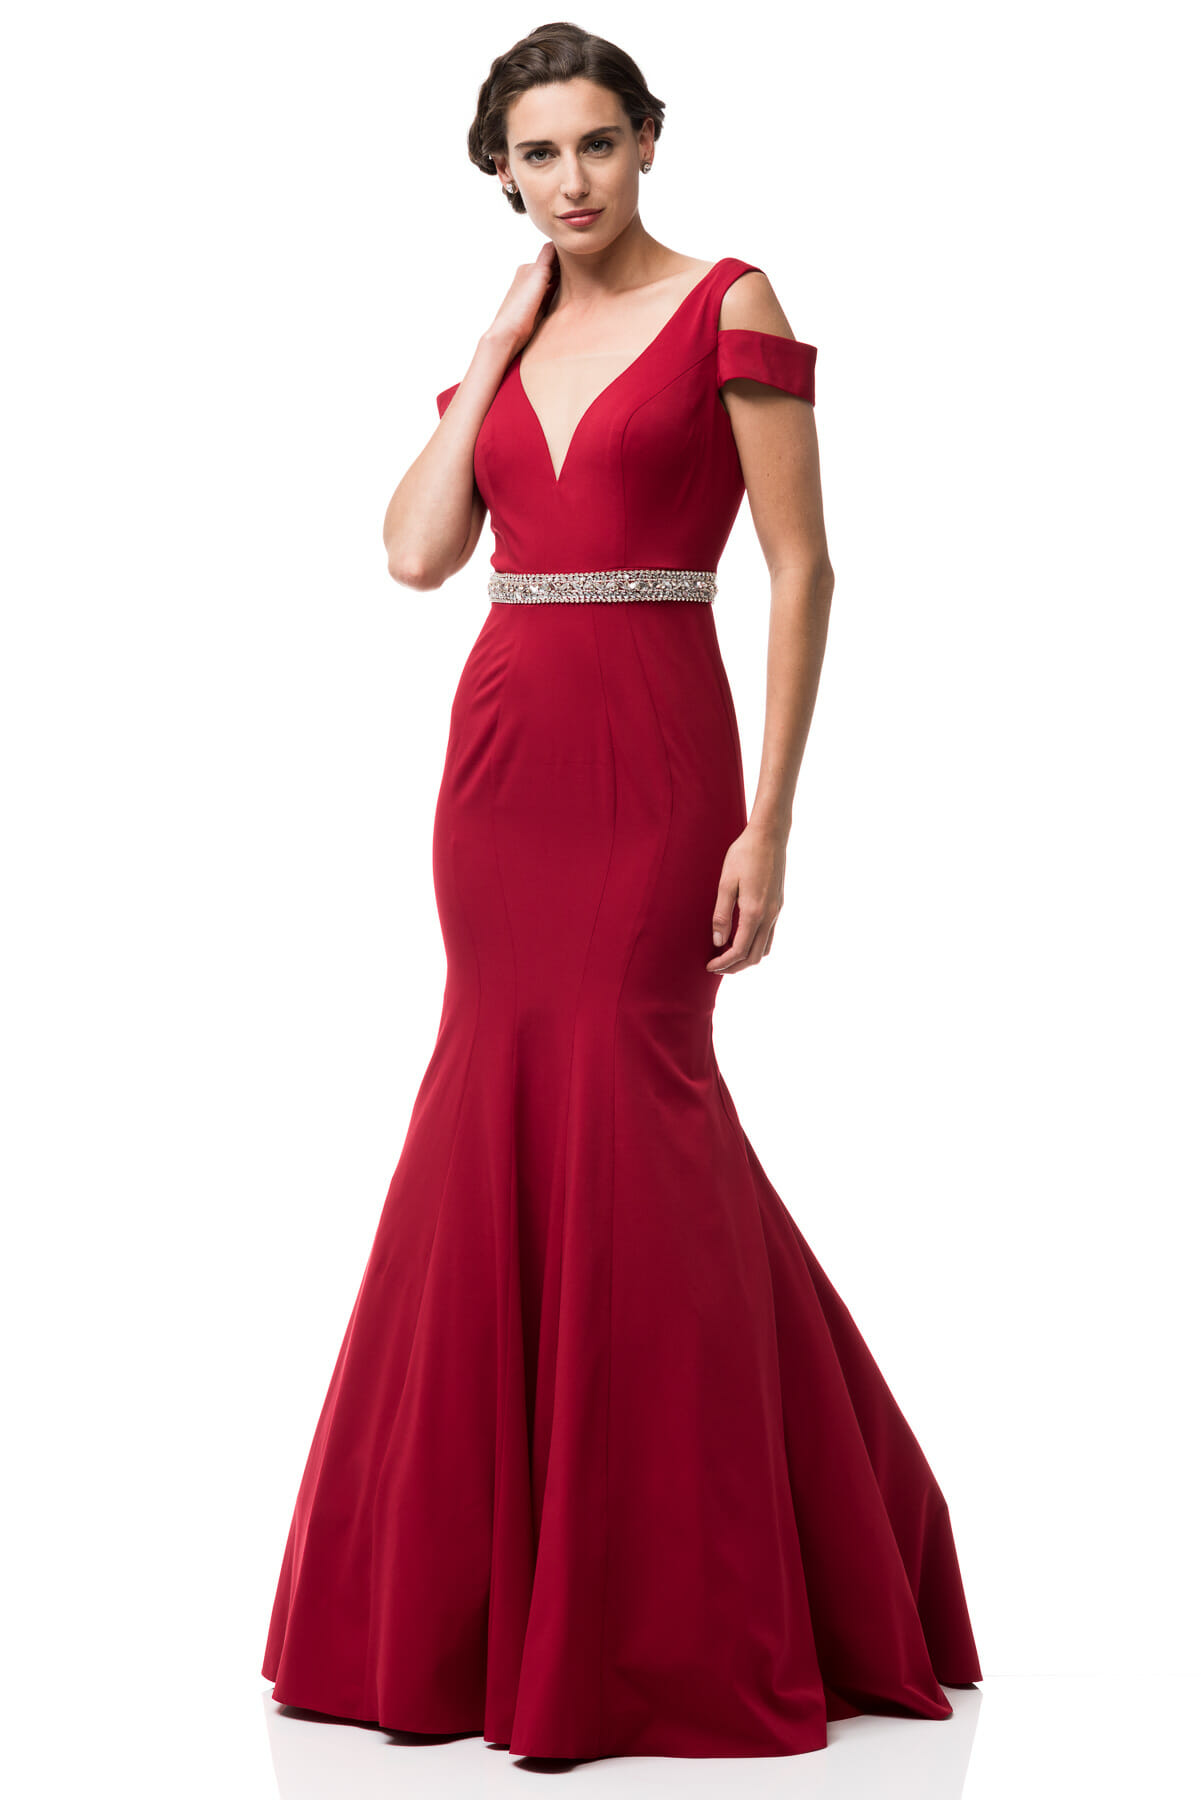 Black and Red Mermaid Prom Dress